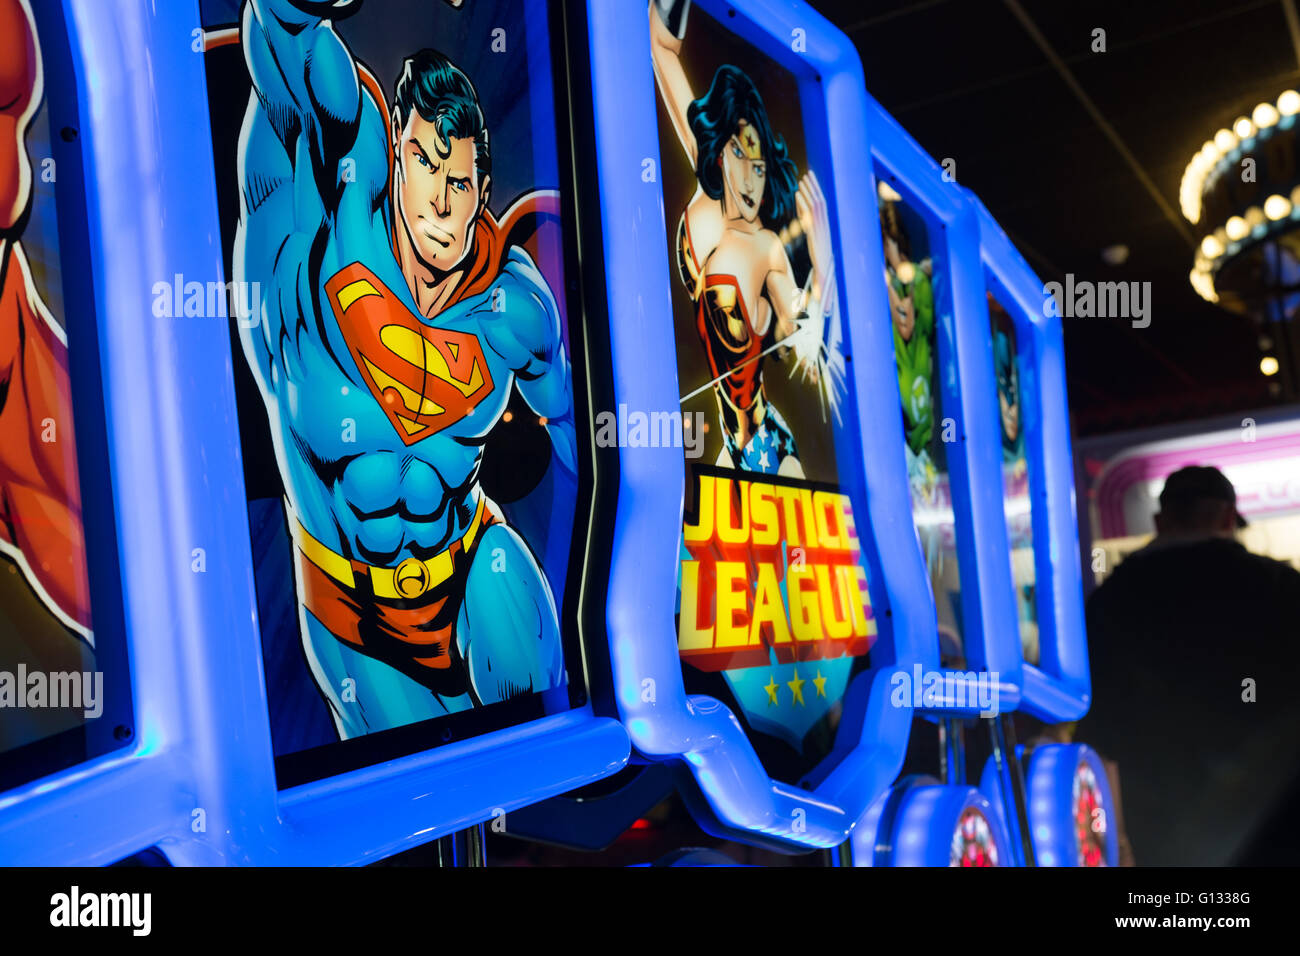 Justice League arcade game at an Amusement arcade on Morecambe seafront, UK - Stock Image